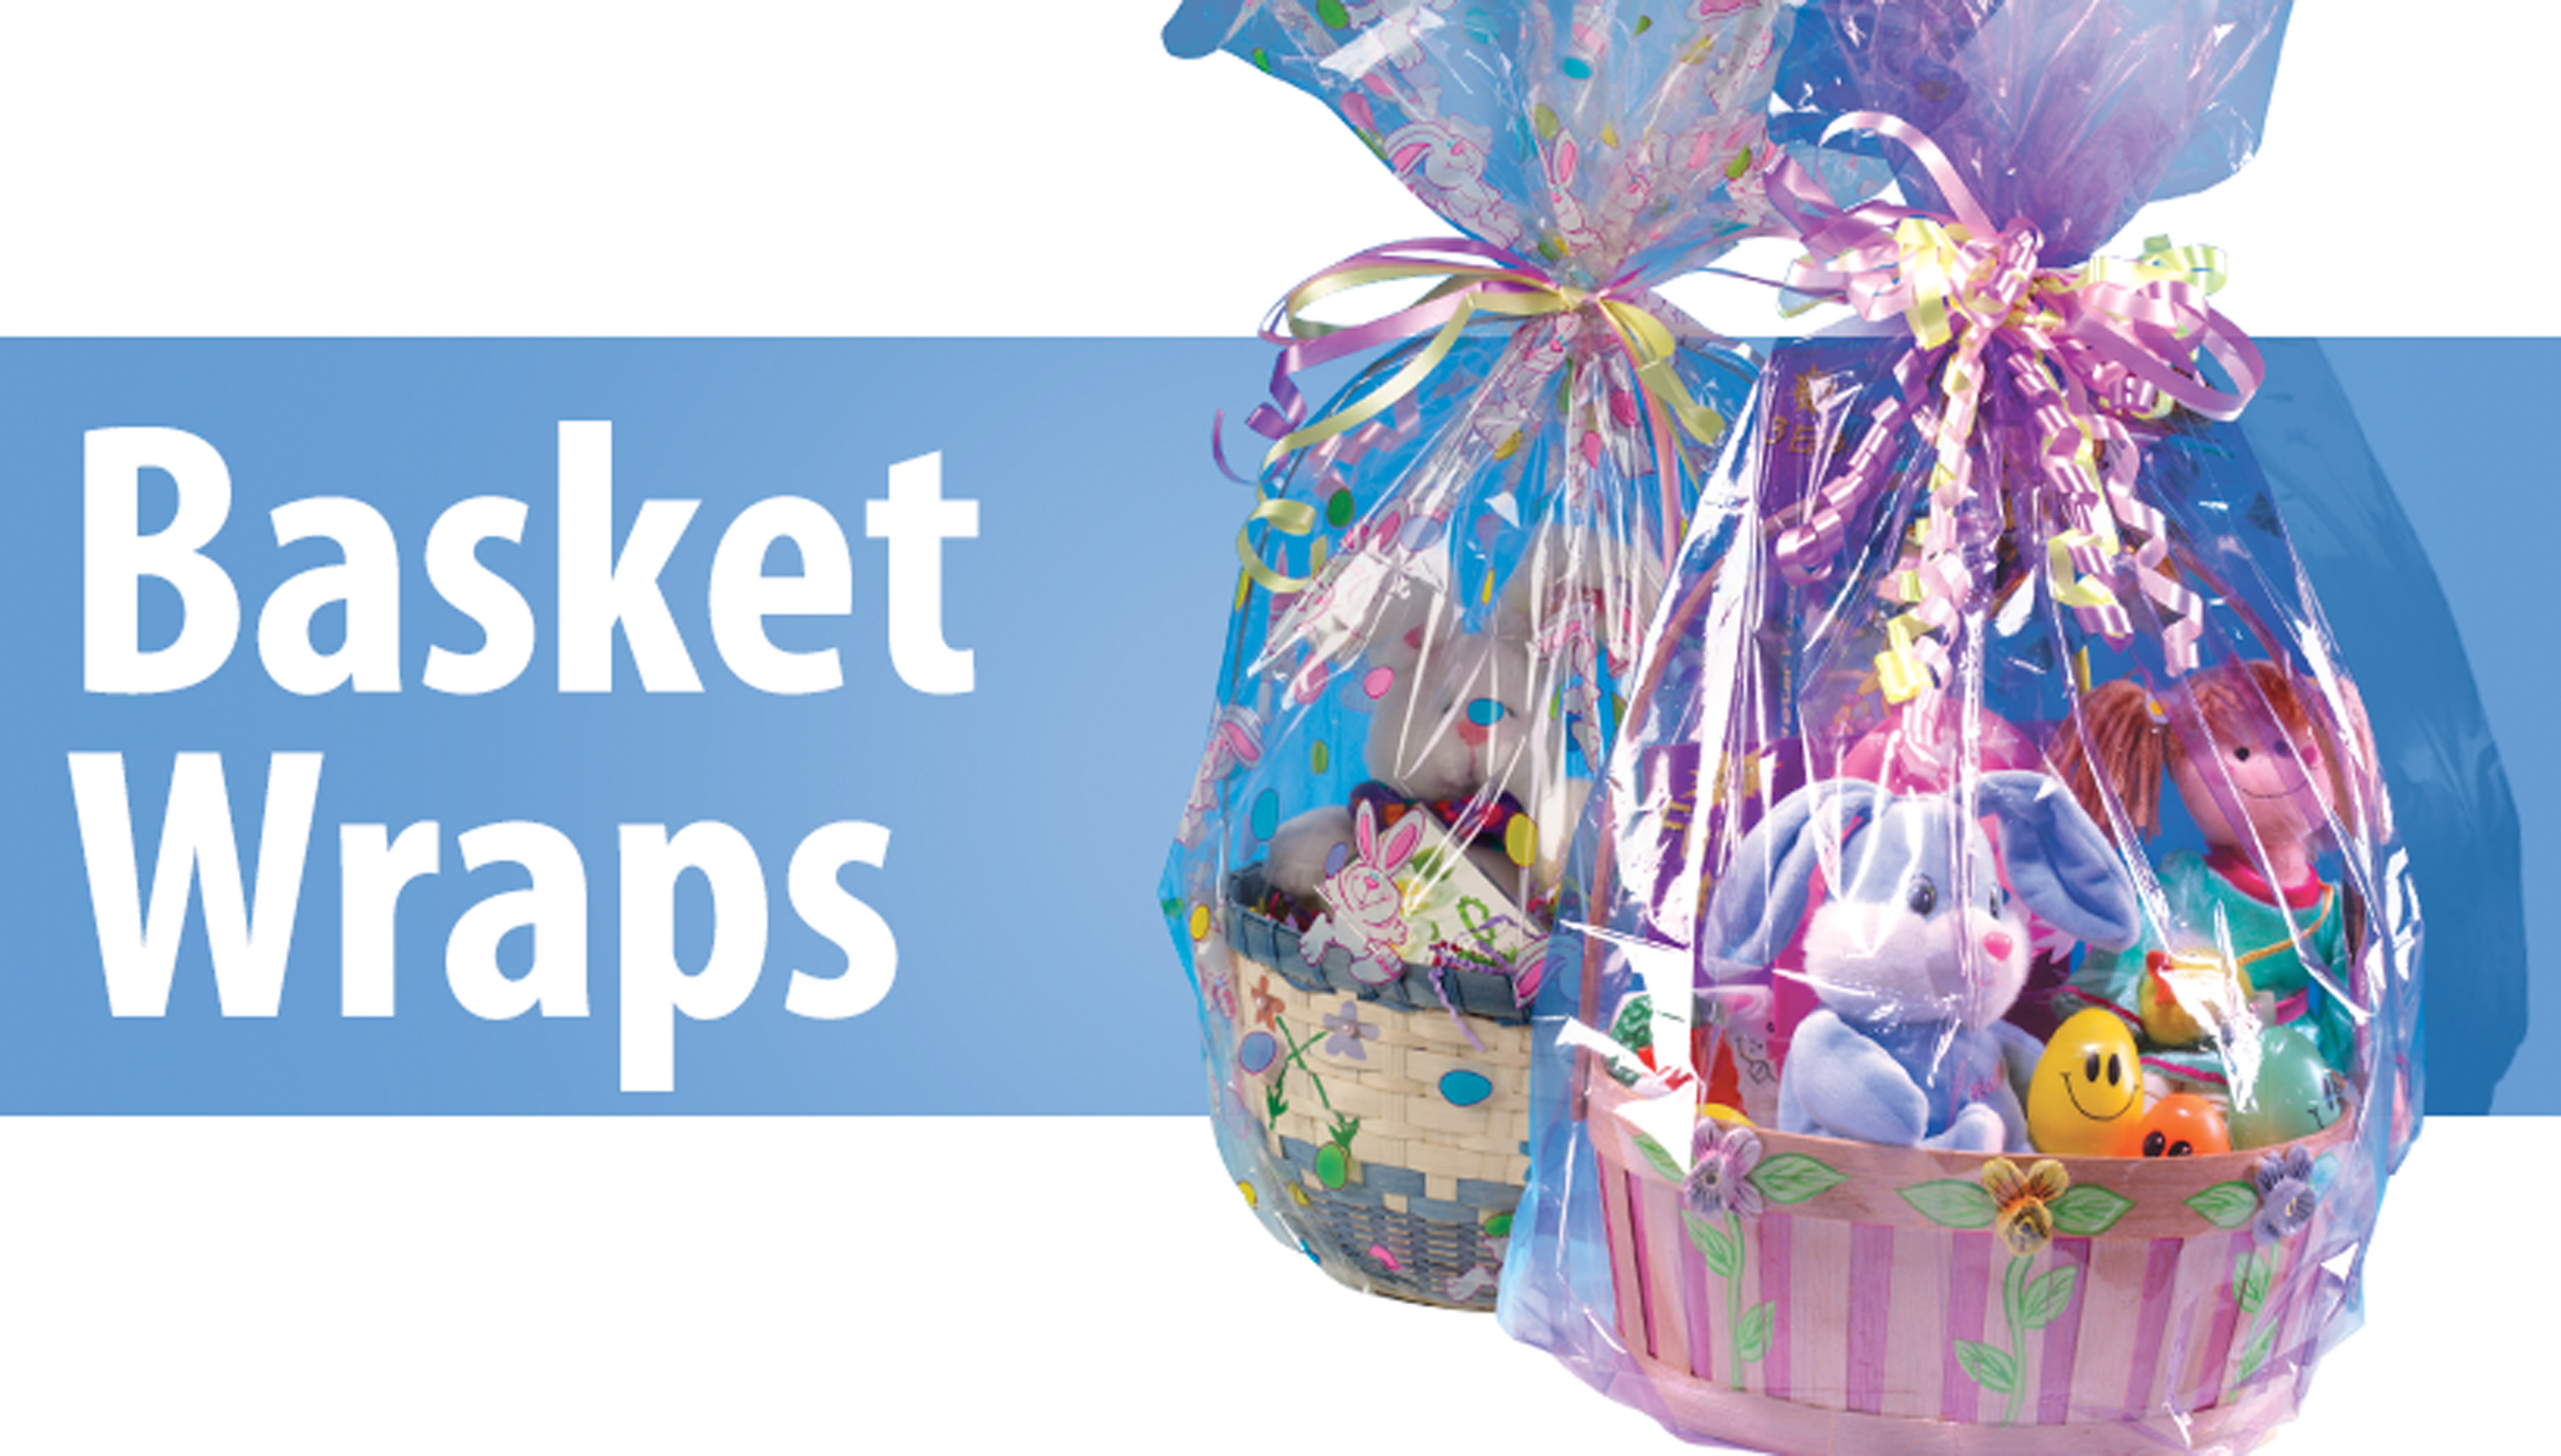 Basket Wrap